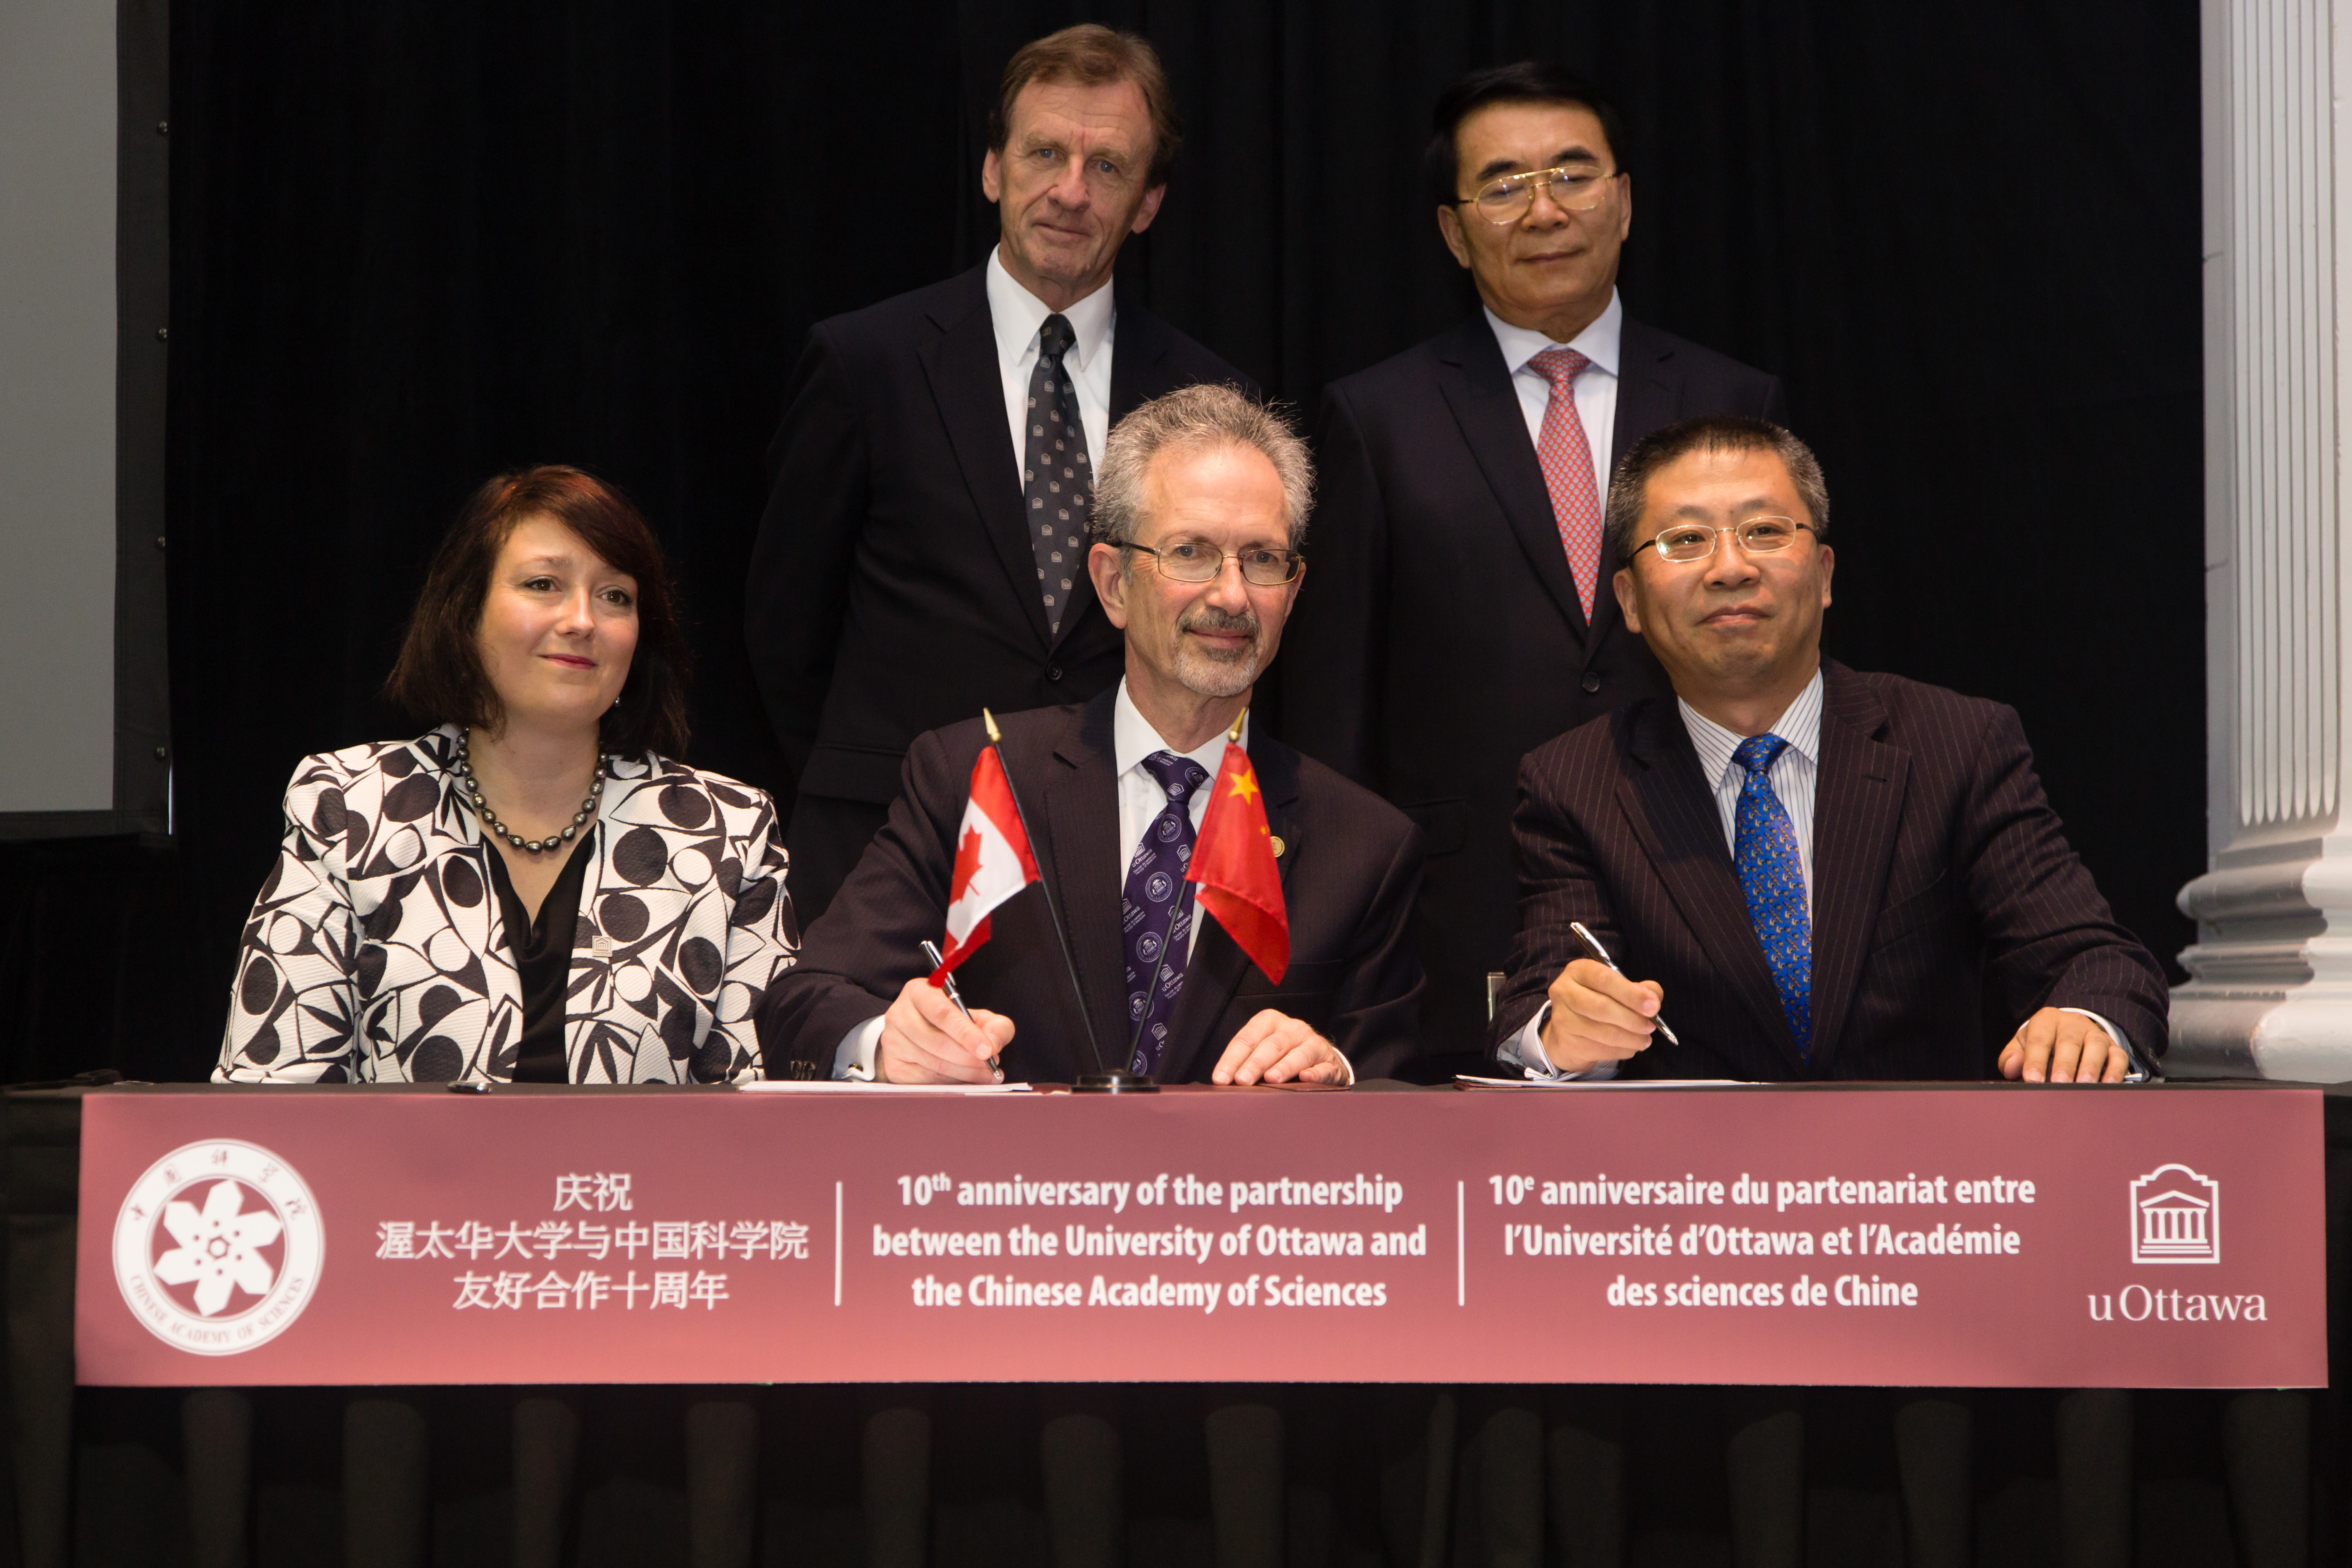 Signing of agreement between uOttawa and Shanghai Institute of Materia Medica